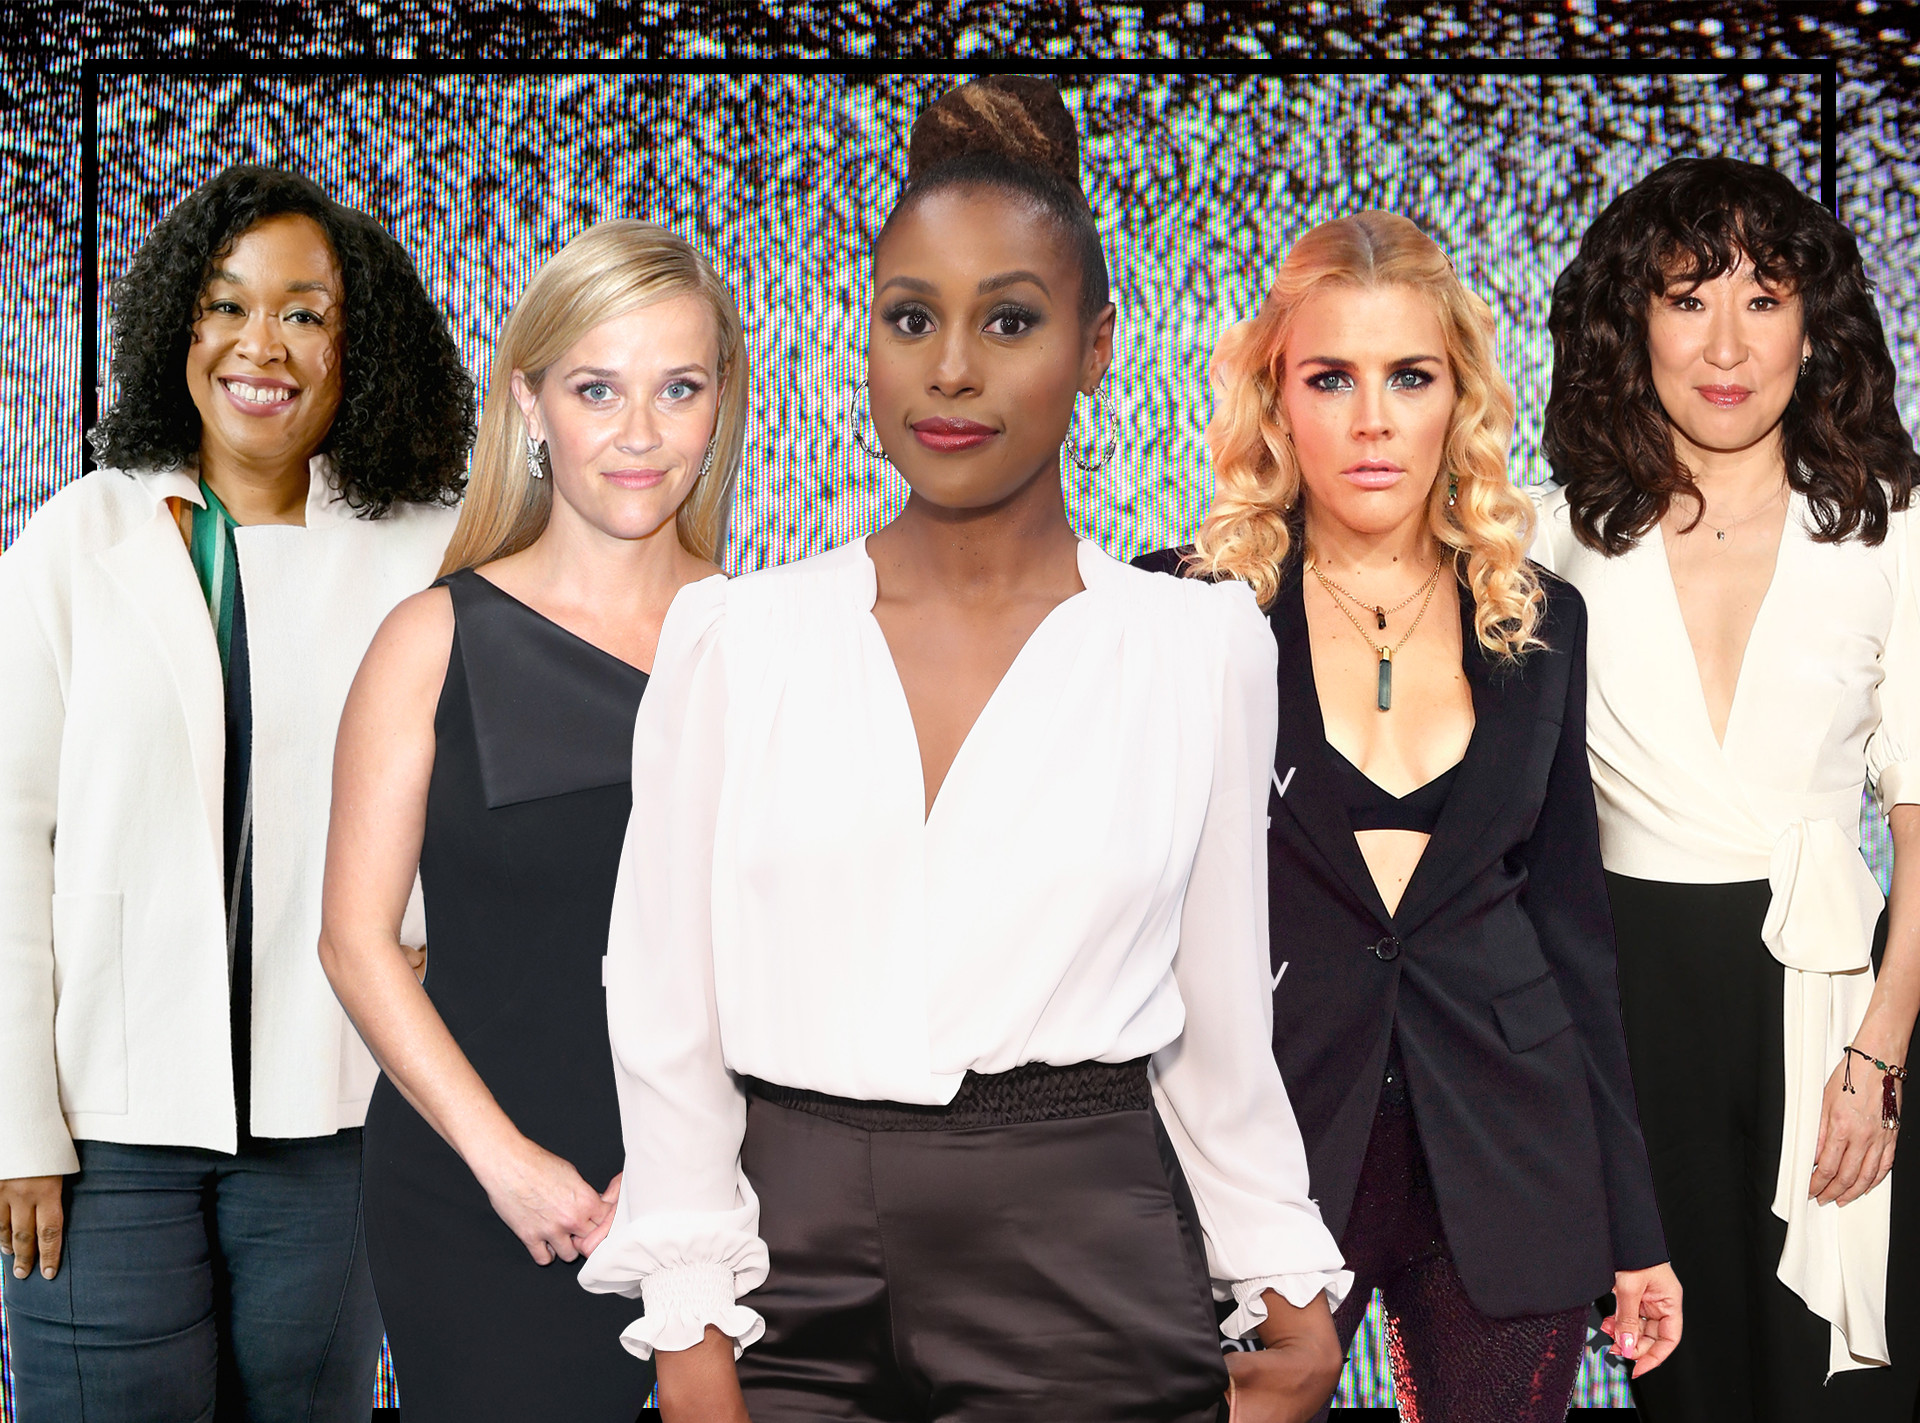 Women Changing TV, Reese Witherspoon, Shonda Rhimes, Sandra Oh, Issa Rae, Busy Philipps